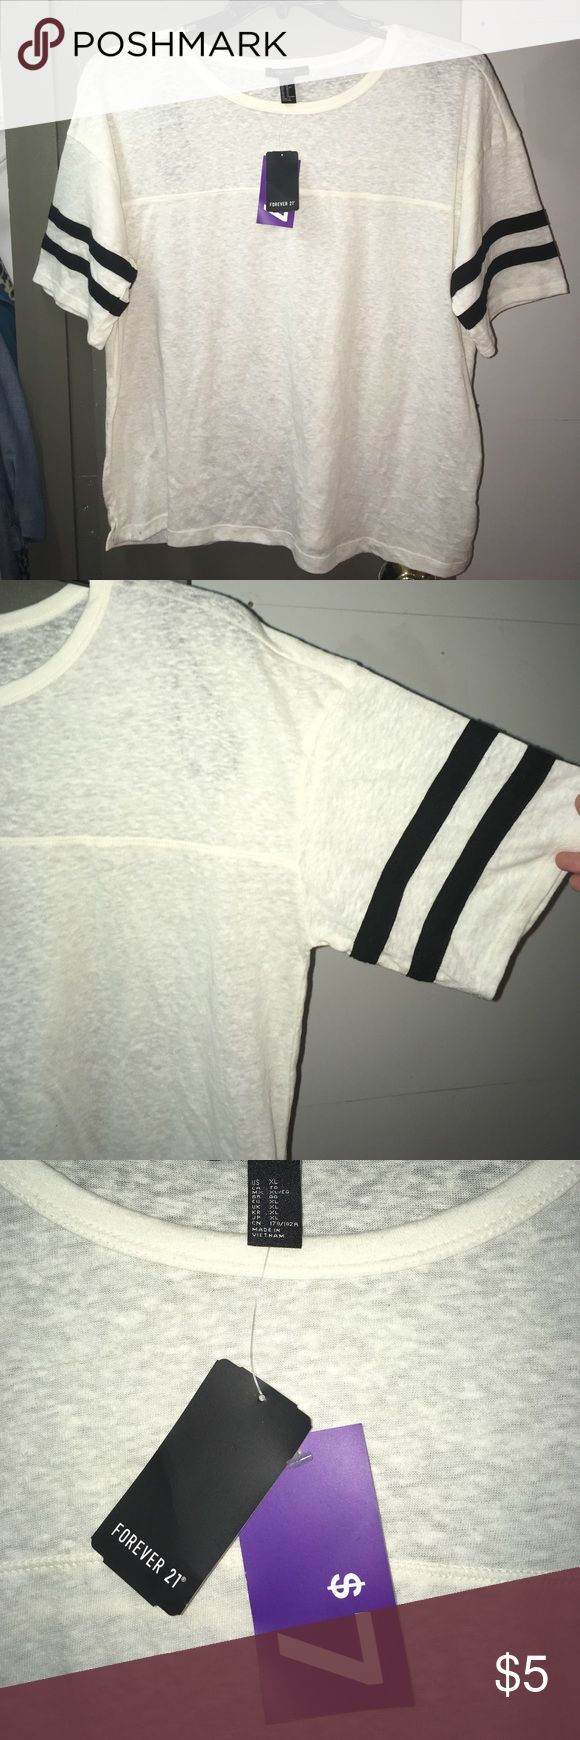 Forever 21 Retro white and black ringer tee. Summer staple vintage-style Forever 21 cream tee with black sleeve stripes. NWT size XL. Forever 21 Tops Tees - Short Sleeve